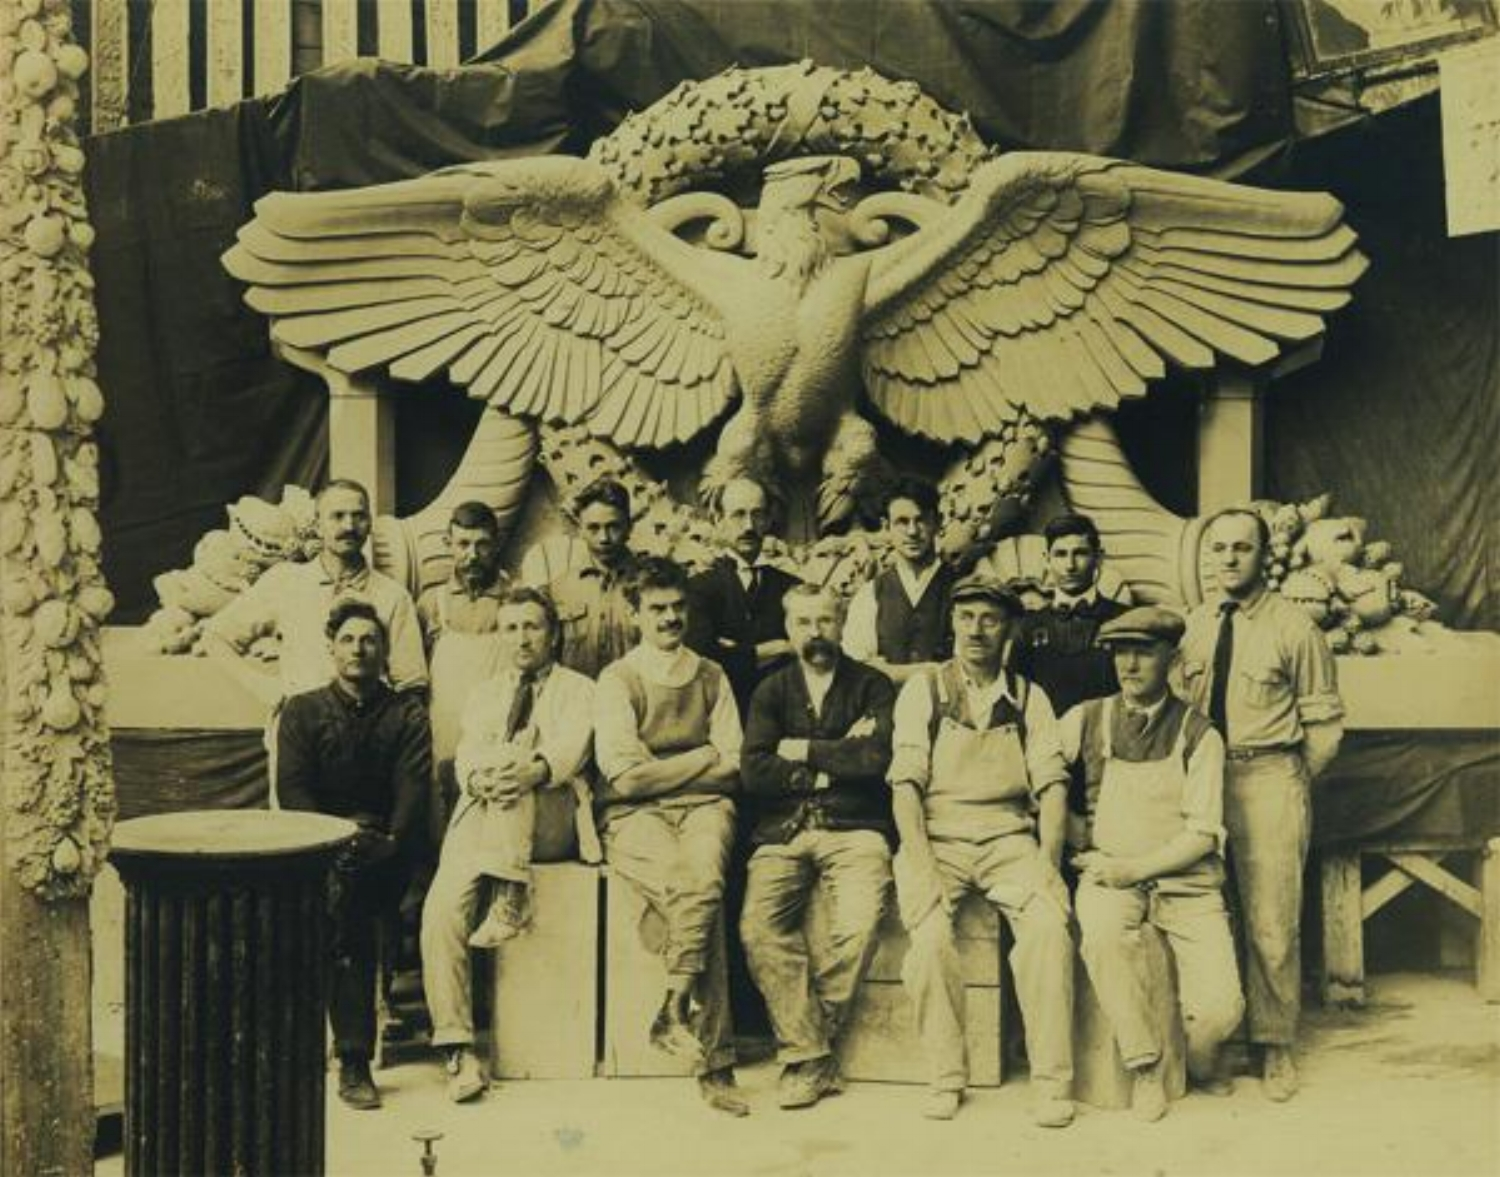 Edward de Csipkes, pictured above, first row, third from the left, was one of the leading artists and sculptors working at Atlanta Terra Cotta during the construction of the Woolworth Building. A native of Romania, de Csipkes trained at the Master Art School in Budapest and was an internationally recognized sculptor before immigrating to the United States in 1903. He moved to Tottenville, Staten Island in 1913 and began work as a modeler for Atlantic Terra Cotta. [Information and photo sourced from skyscraper.org]